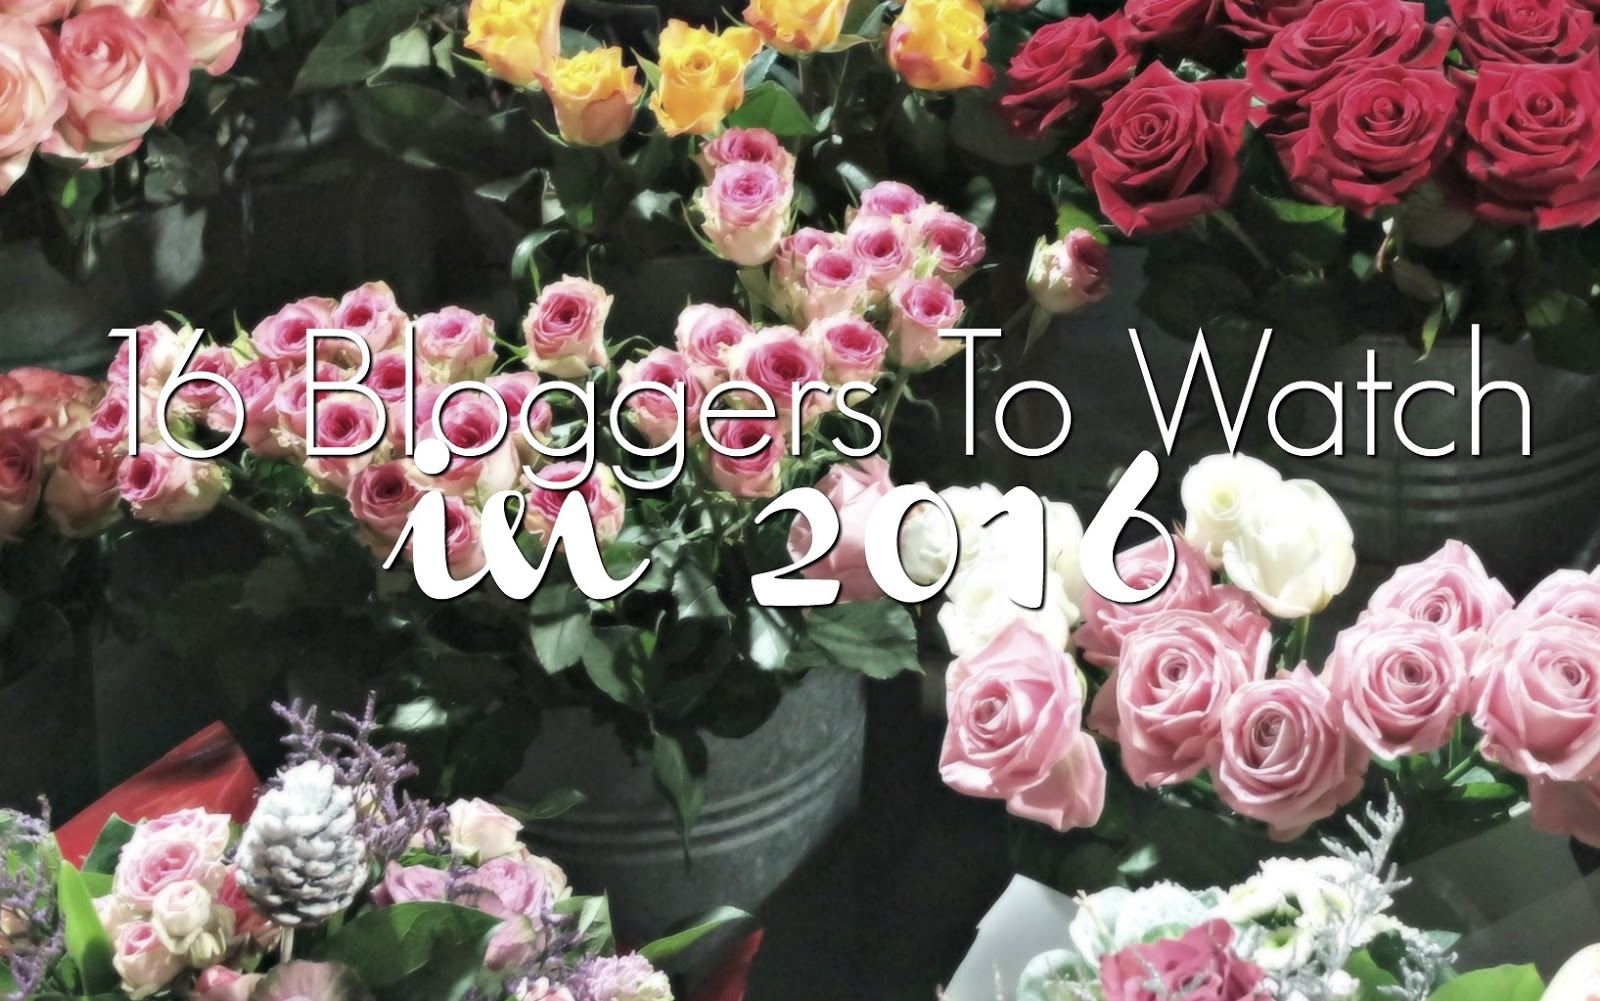 16 Bloggers To Watch In 2016